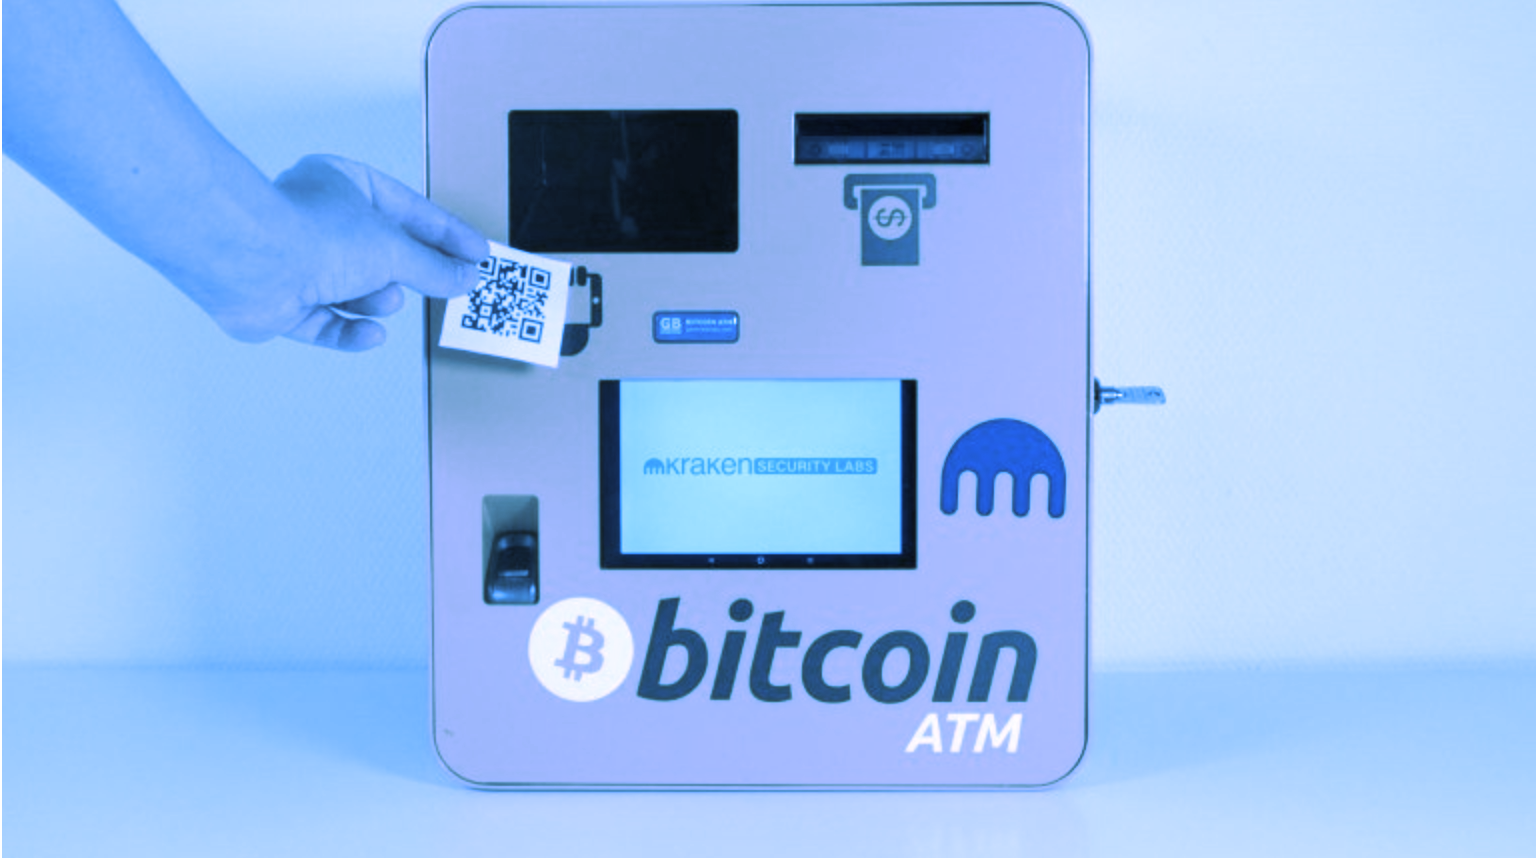 Kraken Reveals Vulnerabilities in 'Commonly Used' Bitcoin ATMs